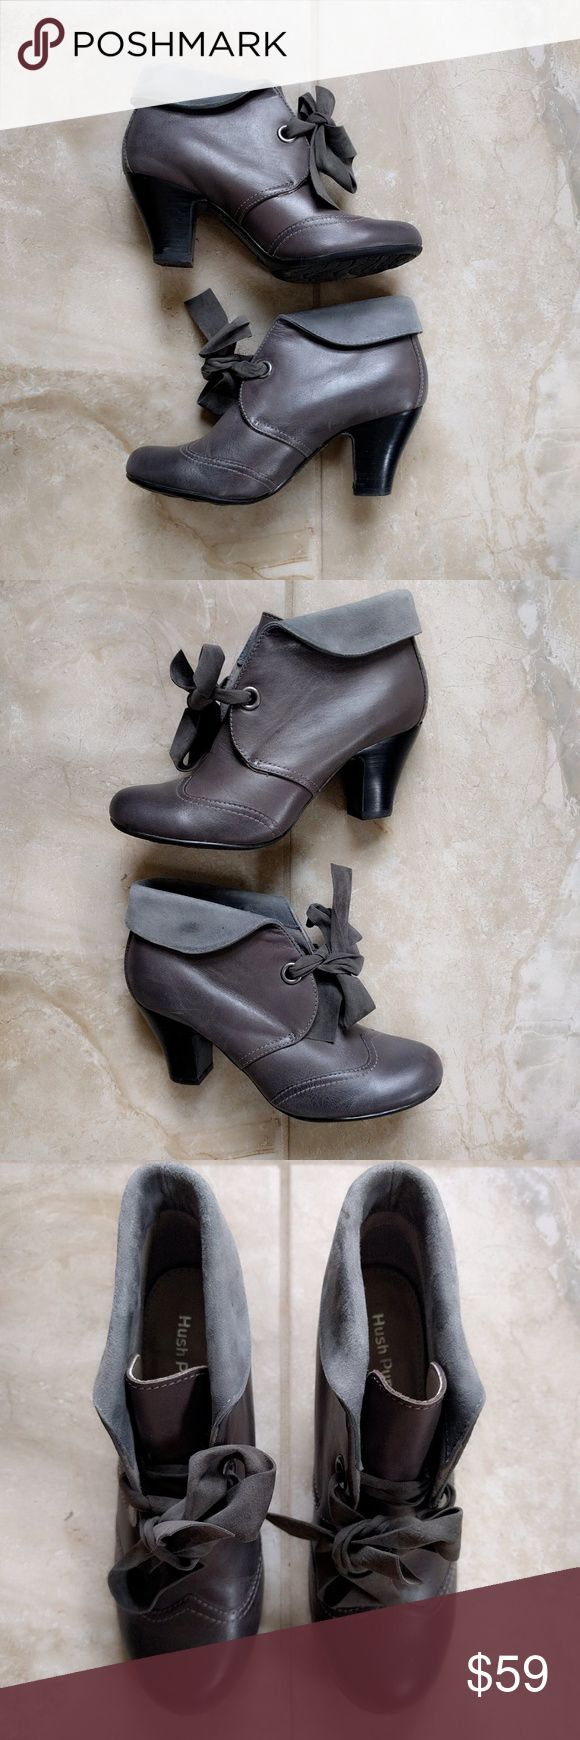 """Hush Puppies Granny Lonna Shootie Ankle Boot 6.5 These pixie ankle boots combine the renowned comfort of Hush Puppies?with fabulous turn-of-the-century inspired vintage style.? Full-grain leather upper, large front bow. Rolled-down cuff with suede collar lining. Perfect for a steampunk costume or casual outfit.  In excellent preowned condition (9.9/10). A few slight surface scratches to leather.? Comes from a smoke-free home.?  BRAND: Hush Puppies. SIZE: US 6.5M. HEEL: 2.75"""" (7cm). OUTSOLE…"""